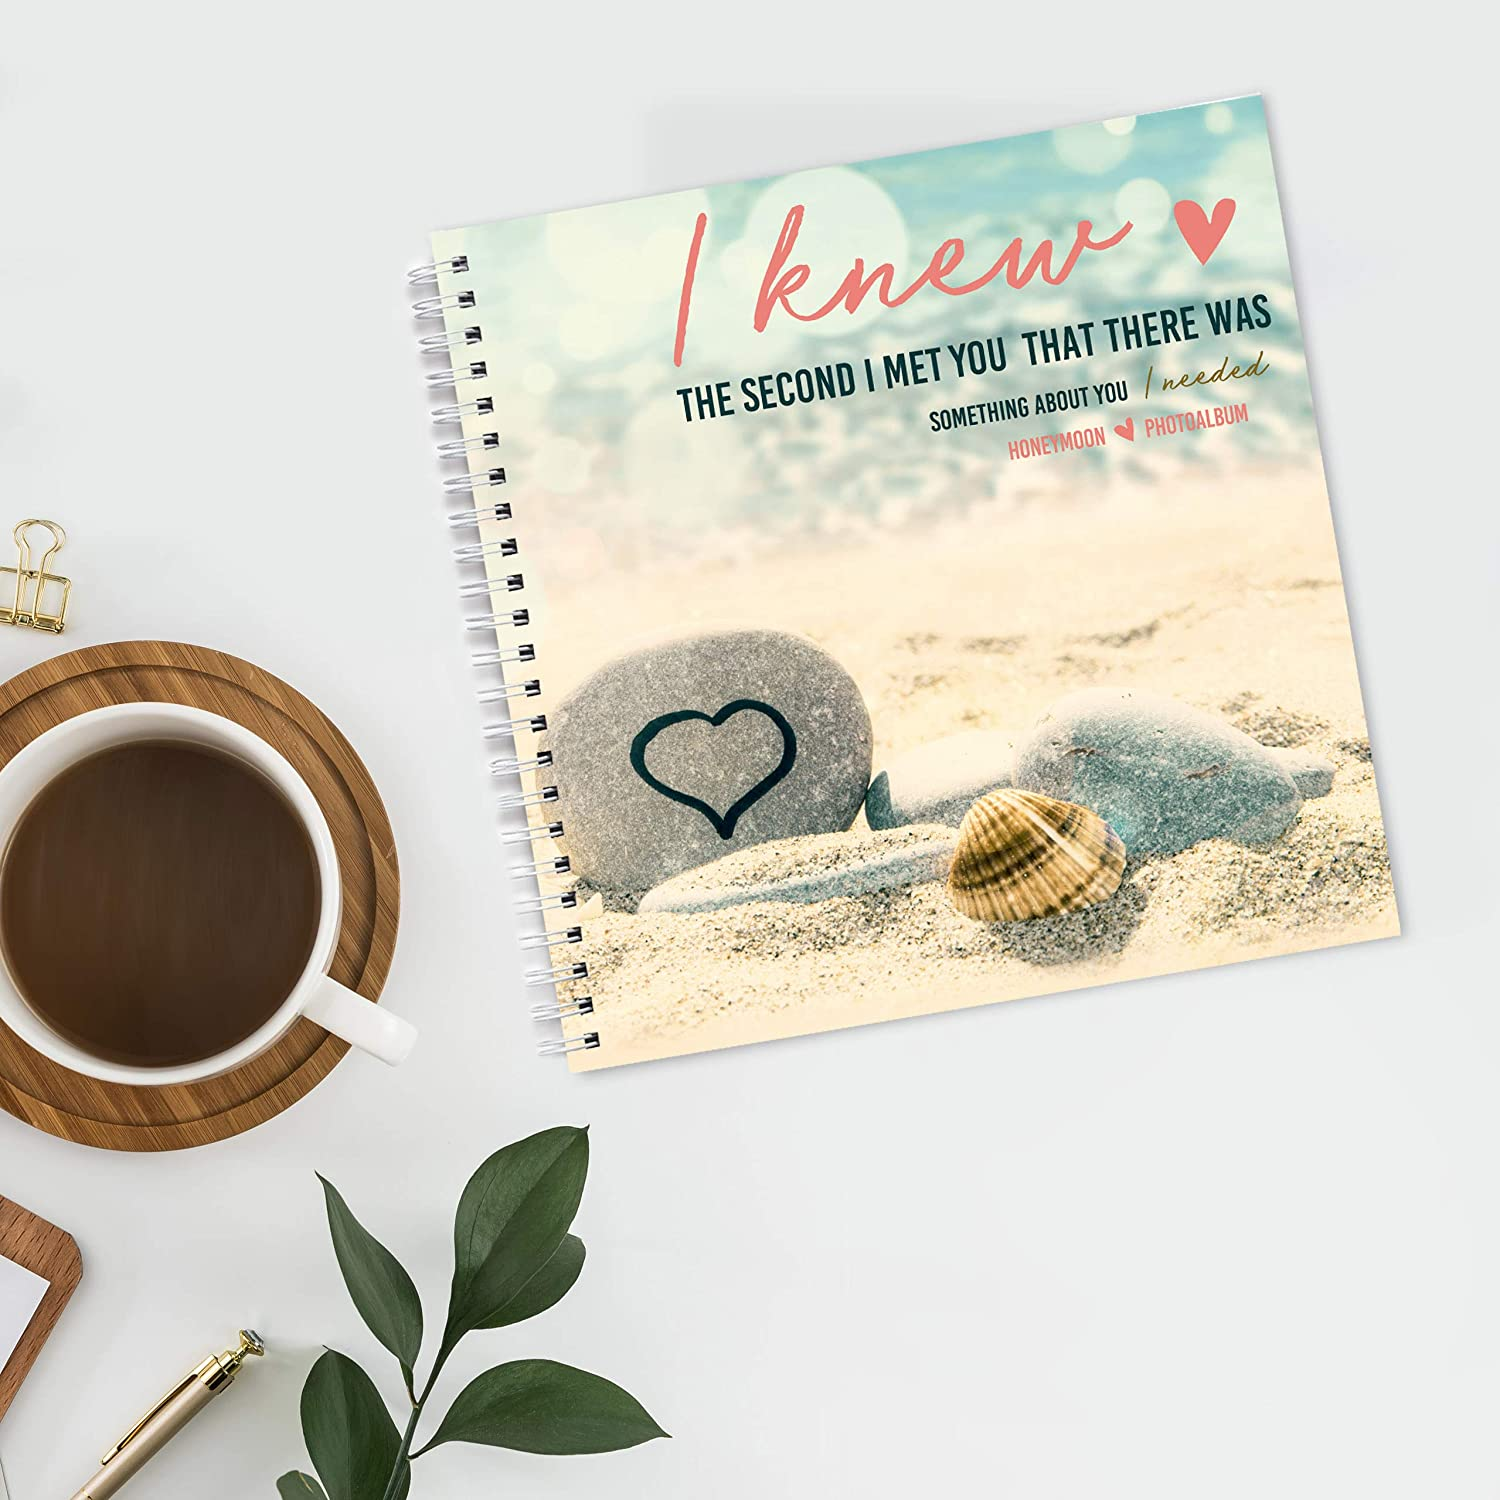 Special Traveling Gift for Newlyweds Cool Adventure Journal for Couples Honeymoon Travel Gifts GC Honeymoon Photo Album 8x8 Scrapbook for Newlywed Couple